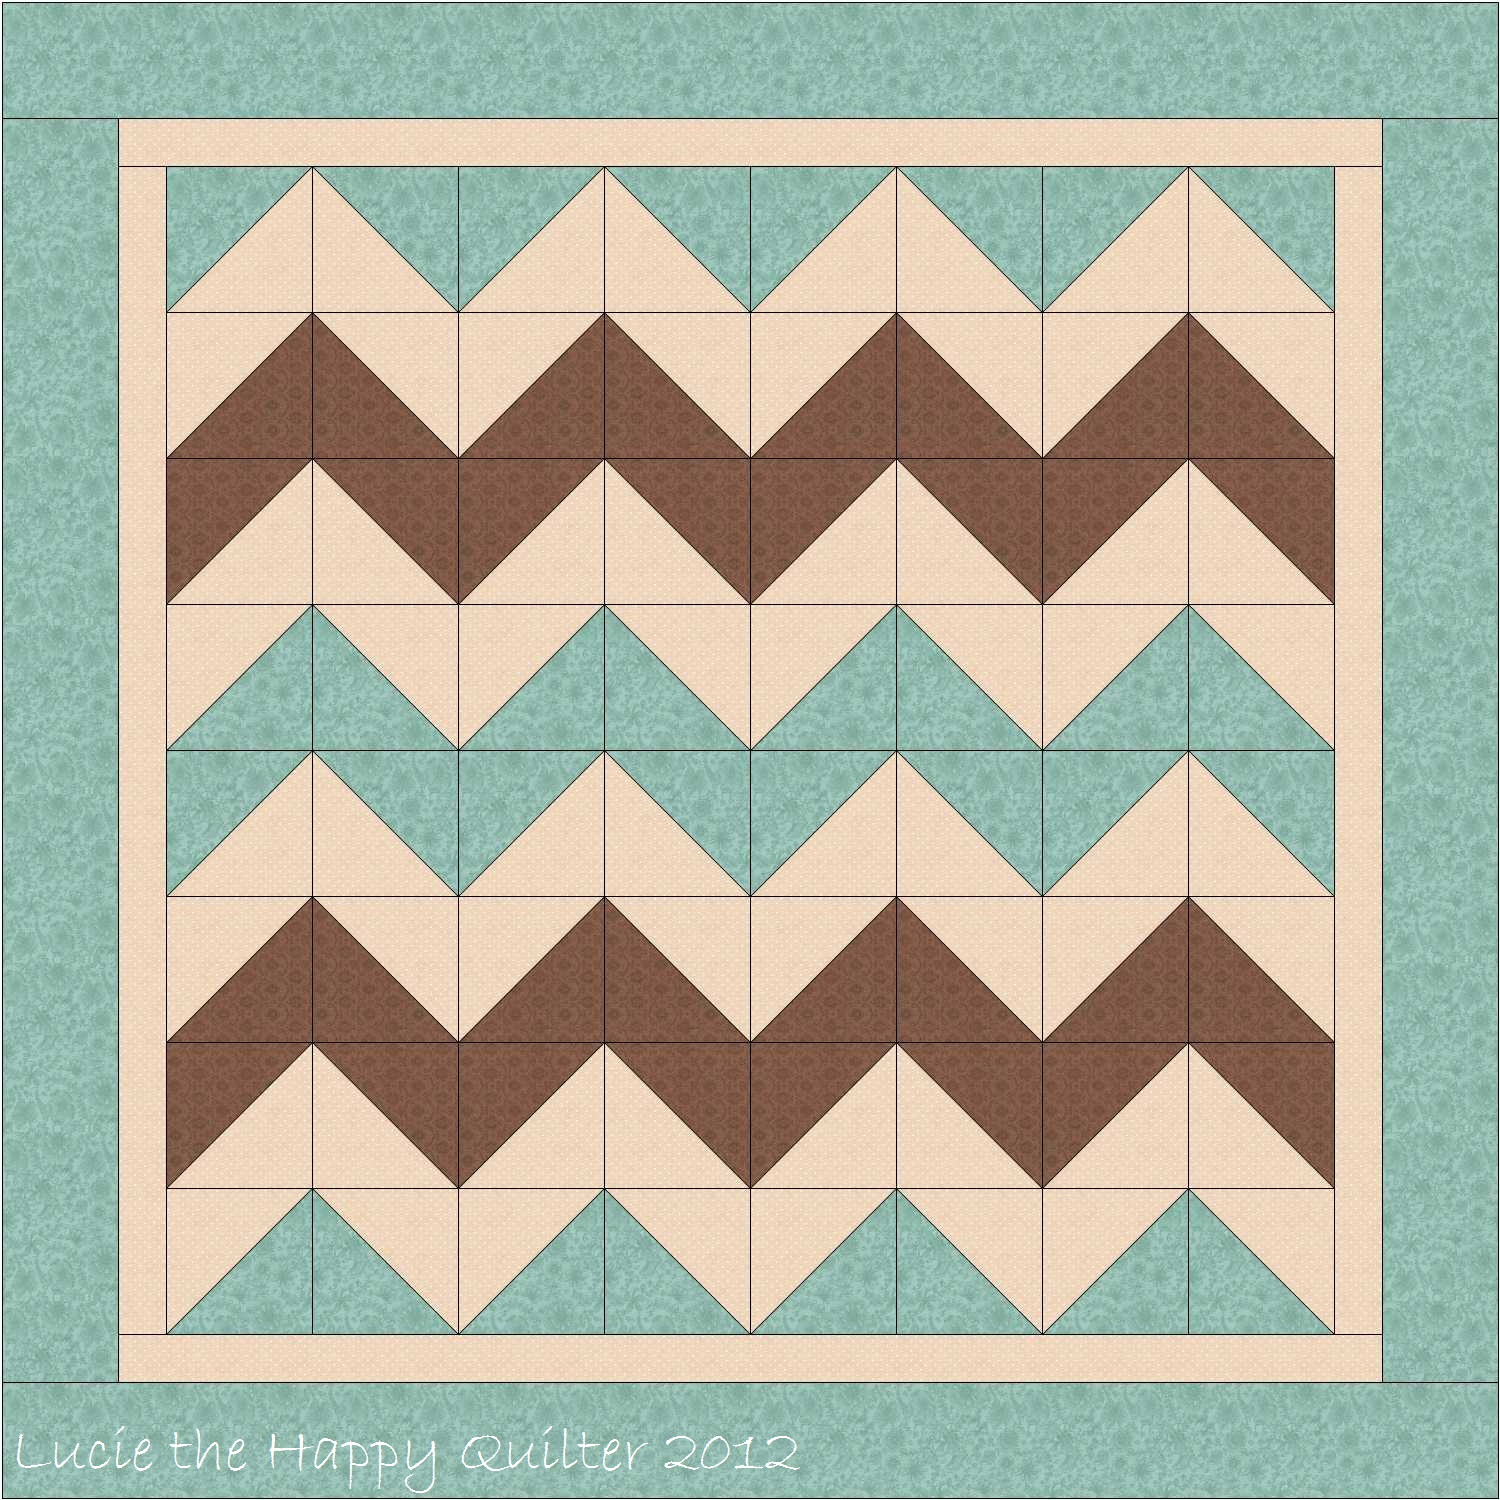 Chevron Quilt Design | Lucie The Happy Quilter's Blog : chevron quilt - Adamdwight.com